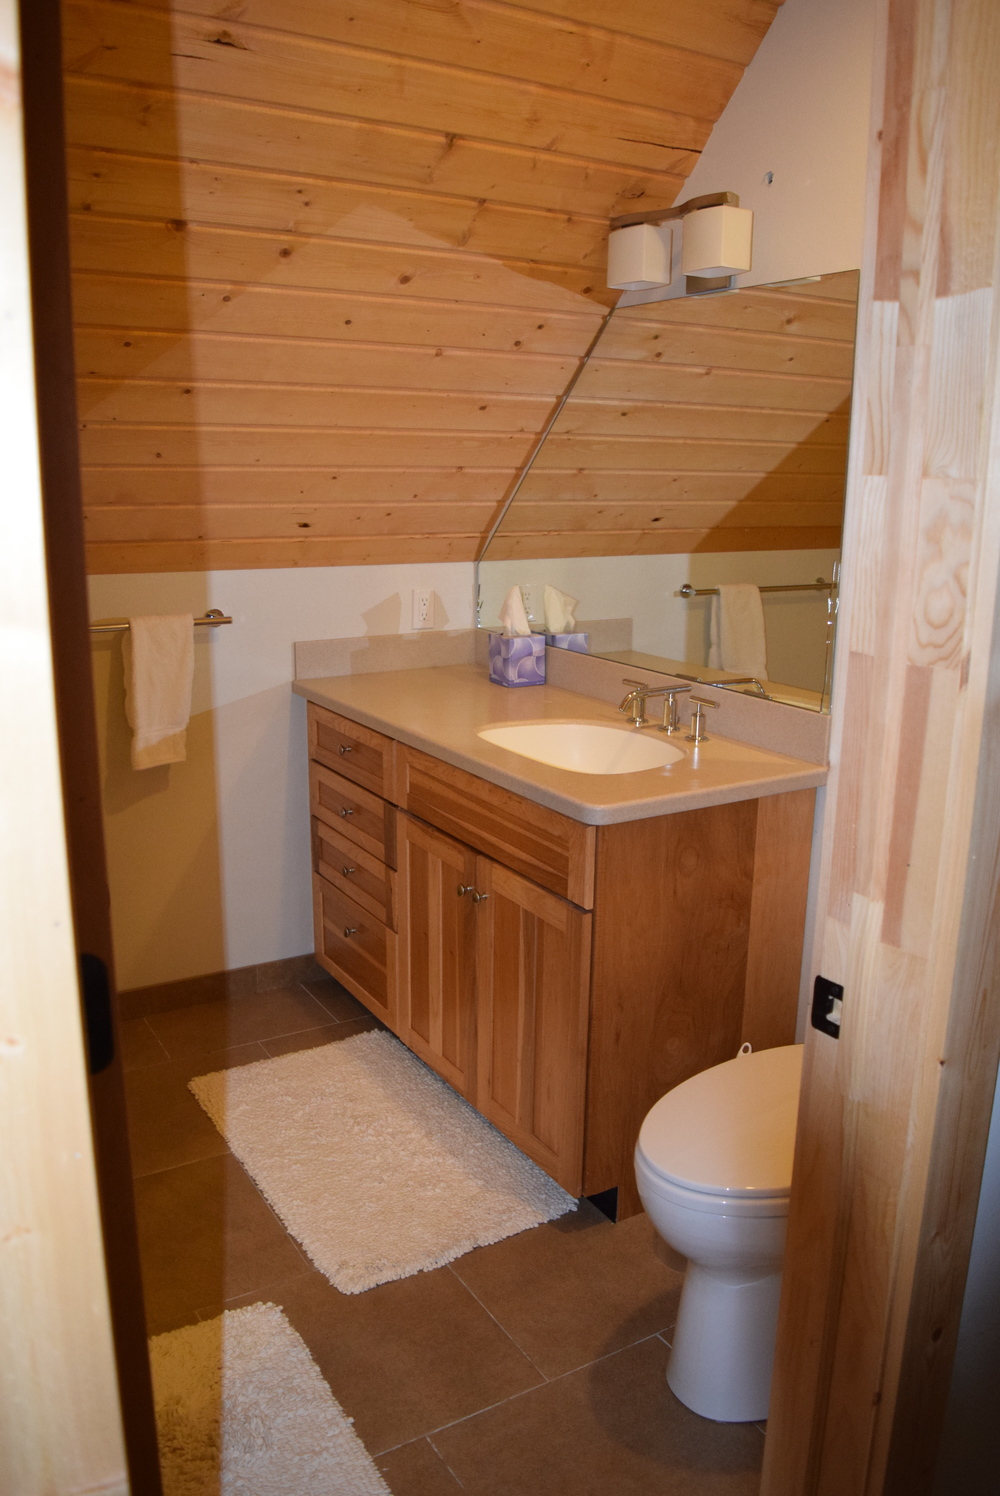 Master bath. Only one sink, but way bigger than the camper bathroom!